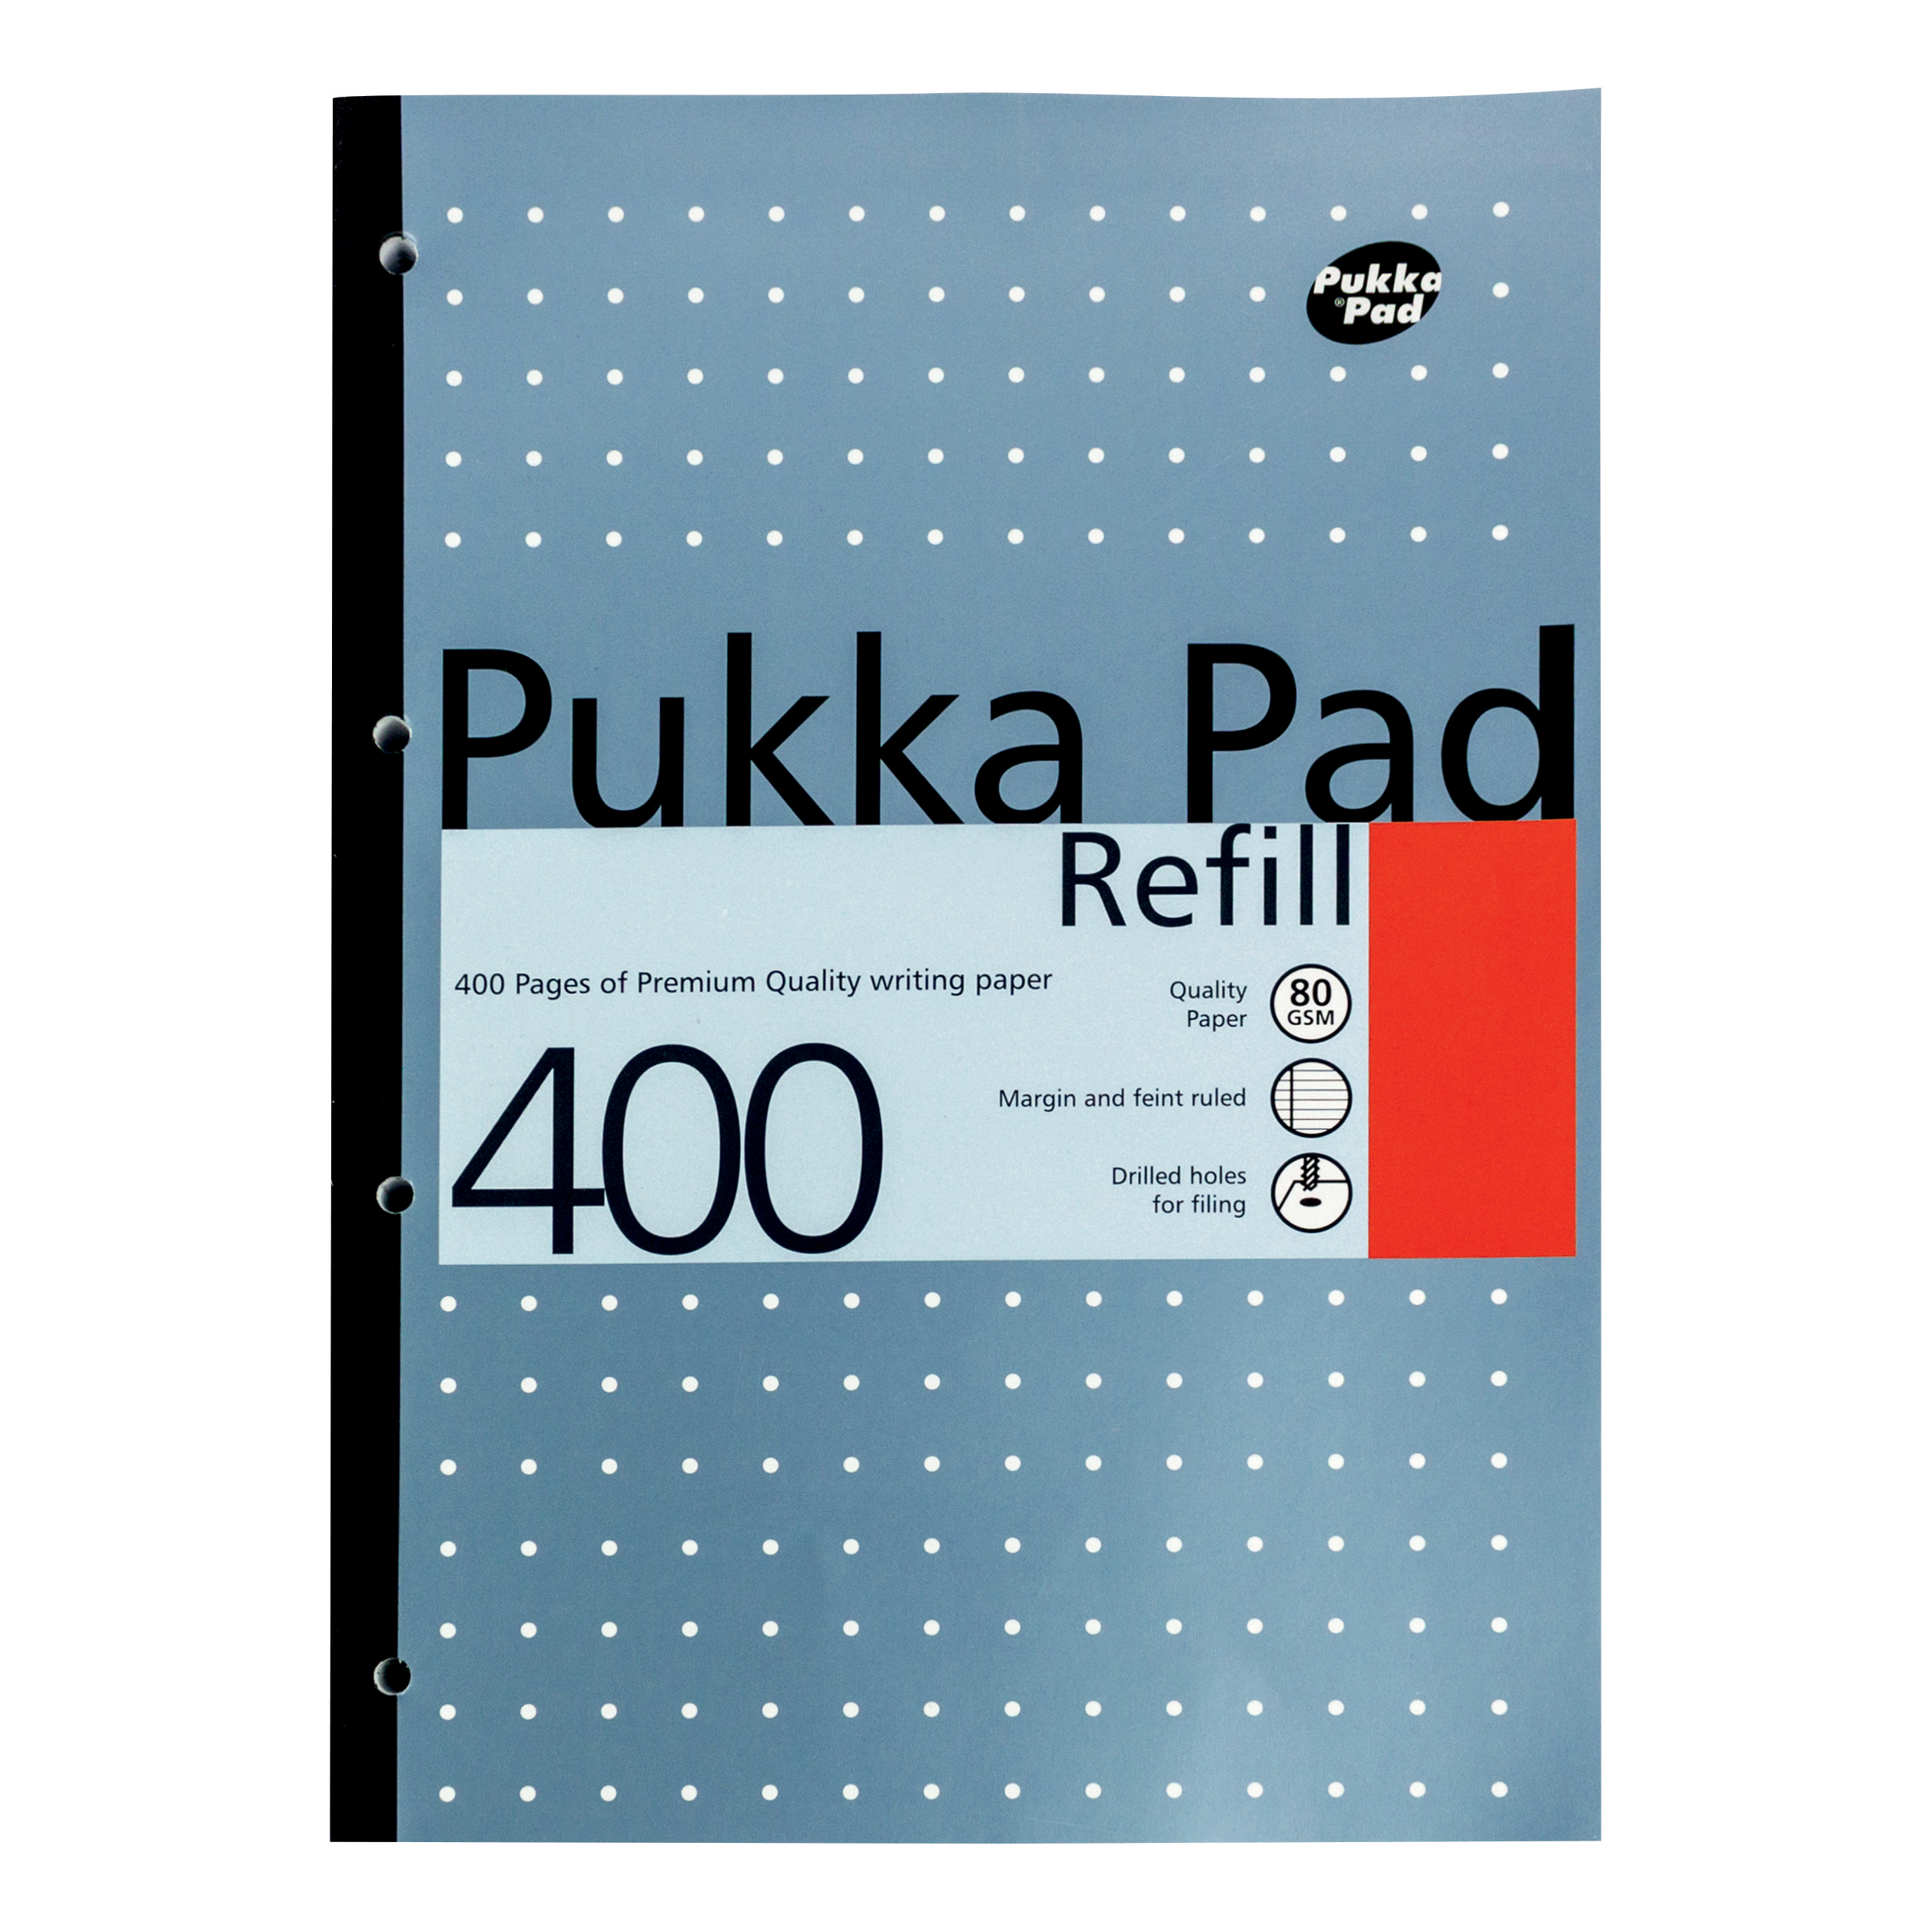 Pukka Pad Refill Pad Sidebound 80gsm Ruled Margin Punched 4 Holes 400pp A4 Assorted Ref REF400 Pack 5